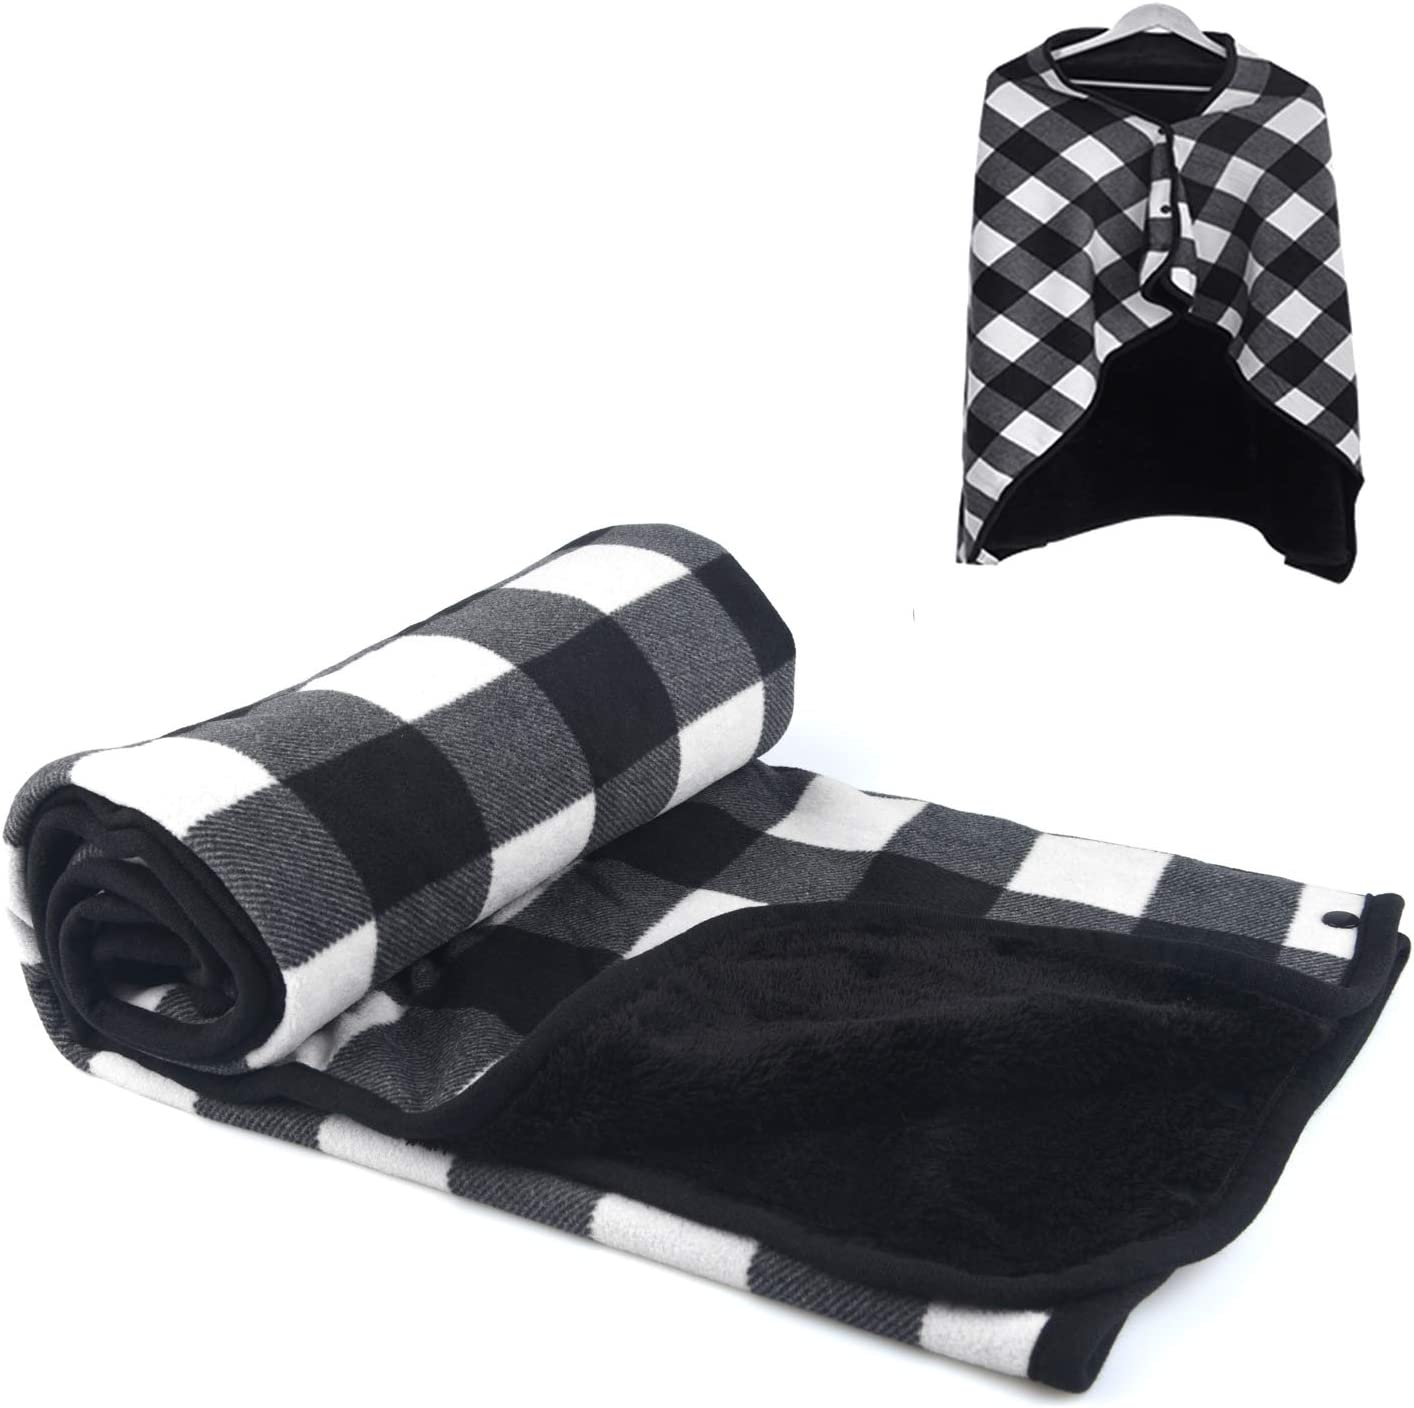 forestfish Warm Plaid Flannel Blankets Lightweight Throws for Lap Bed Sofa Office, Black-White